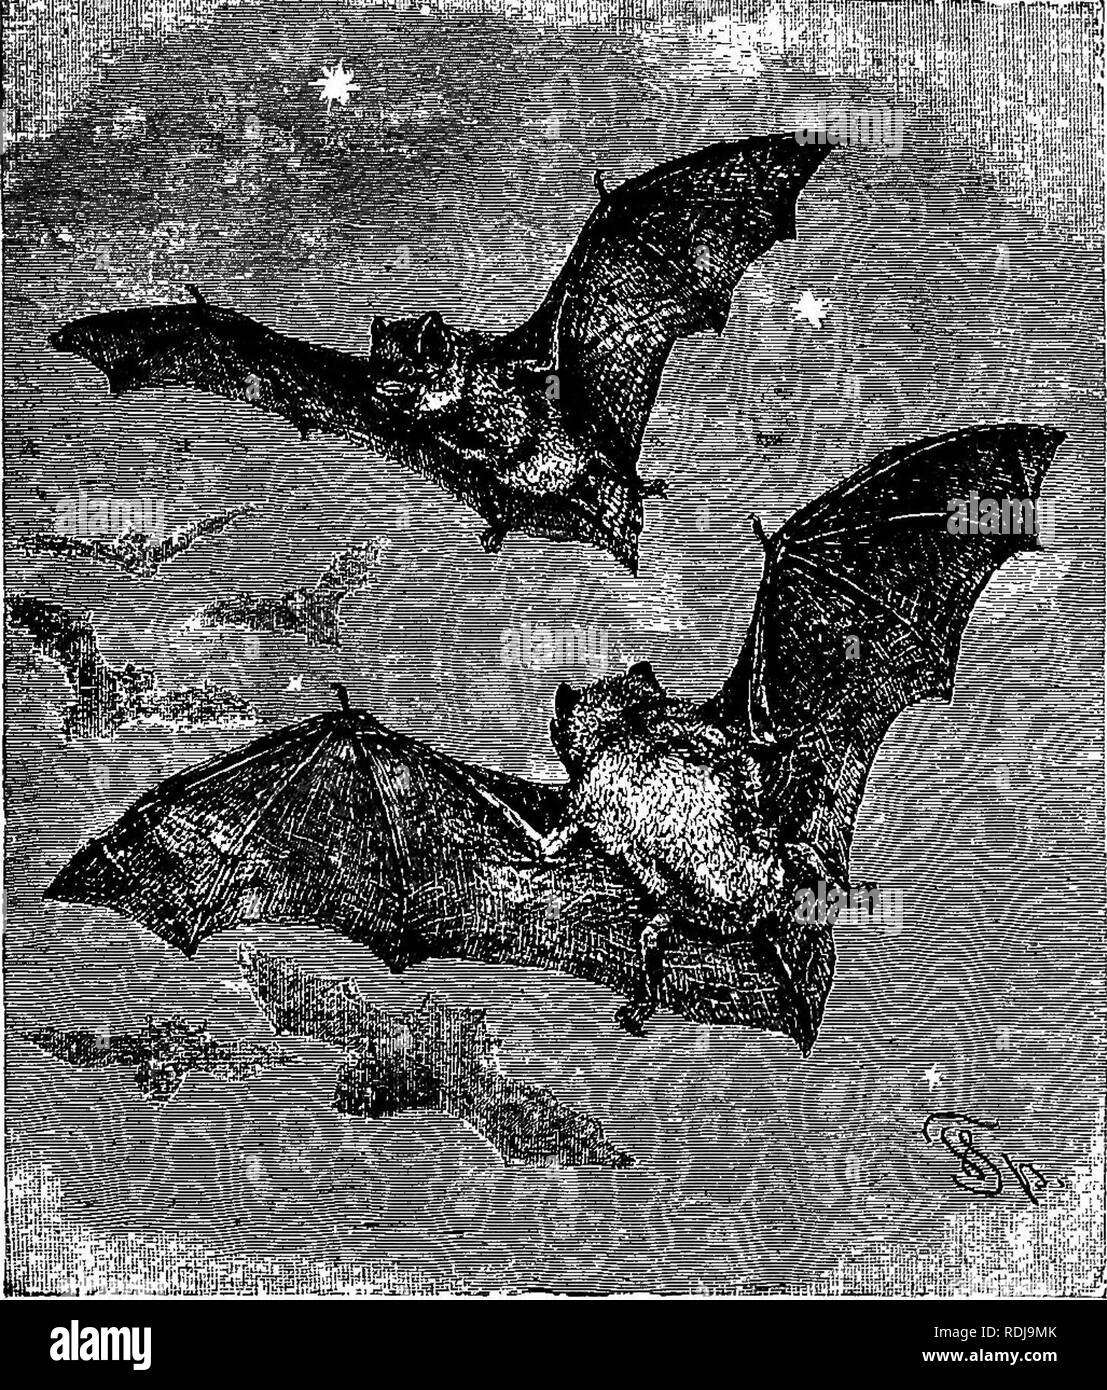 """. The animals of the world. Brehm's life of animals;. Mammals. FLYING DOGS, OR FRUIT-EATING BATS. 79 weather lasts they remain in their pendant attitude, but on the warmer winter days some species awake and fly about even in snow and thawing weather. All Bats carry their young ones around with them when they fly, even when the little ones can use their wings fairly well and are able to temporarily. PIPISTEELLE BAT. -Out in the night ii 1 """" tli^.LtJv, i'.i,iol.viiio. LuoJj !».js, looking for such-tiny insects as Gnats, Midges and' other two-winged Flies, which form its food. This animal is foun Stock Photo"""